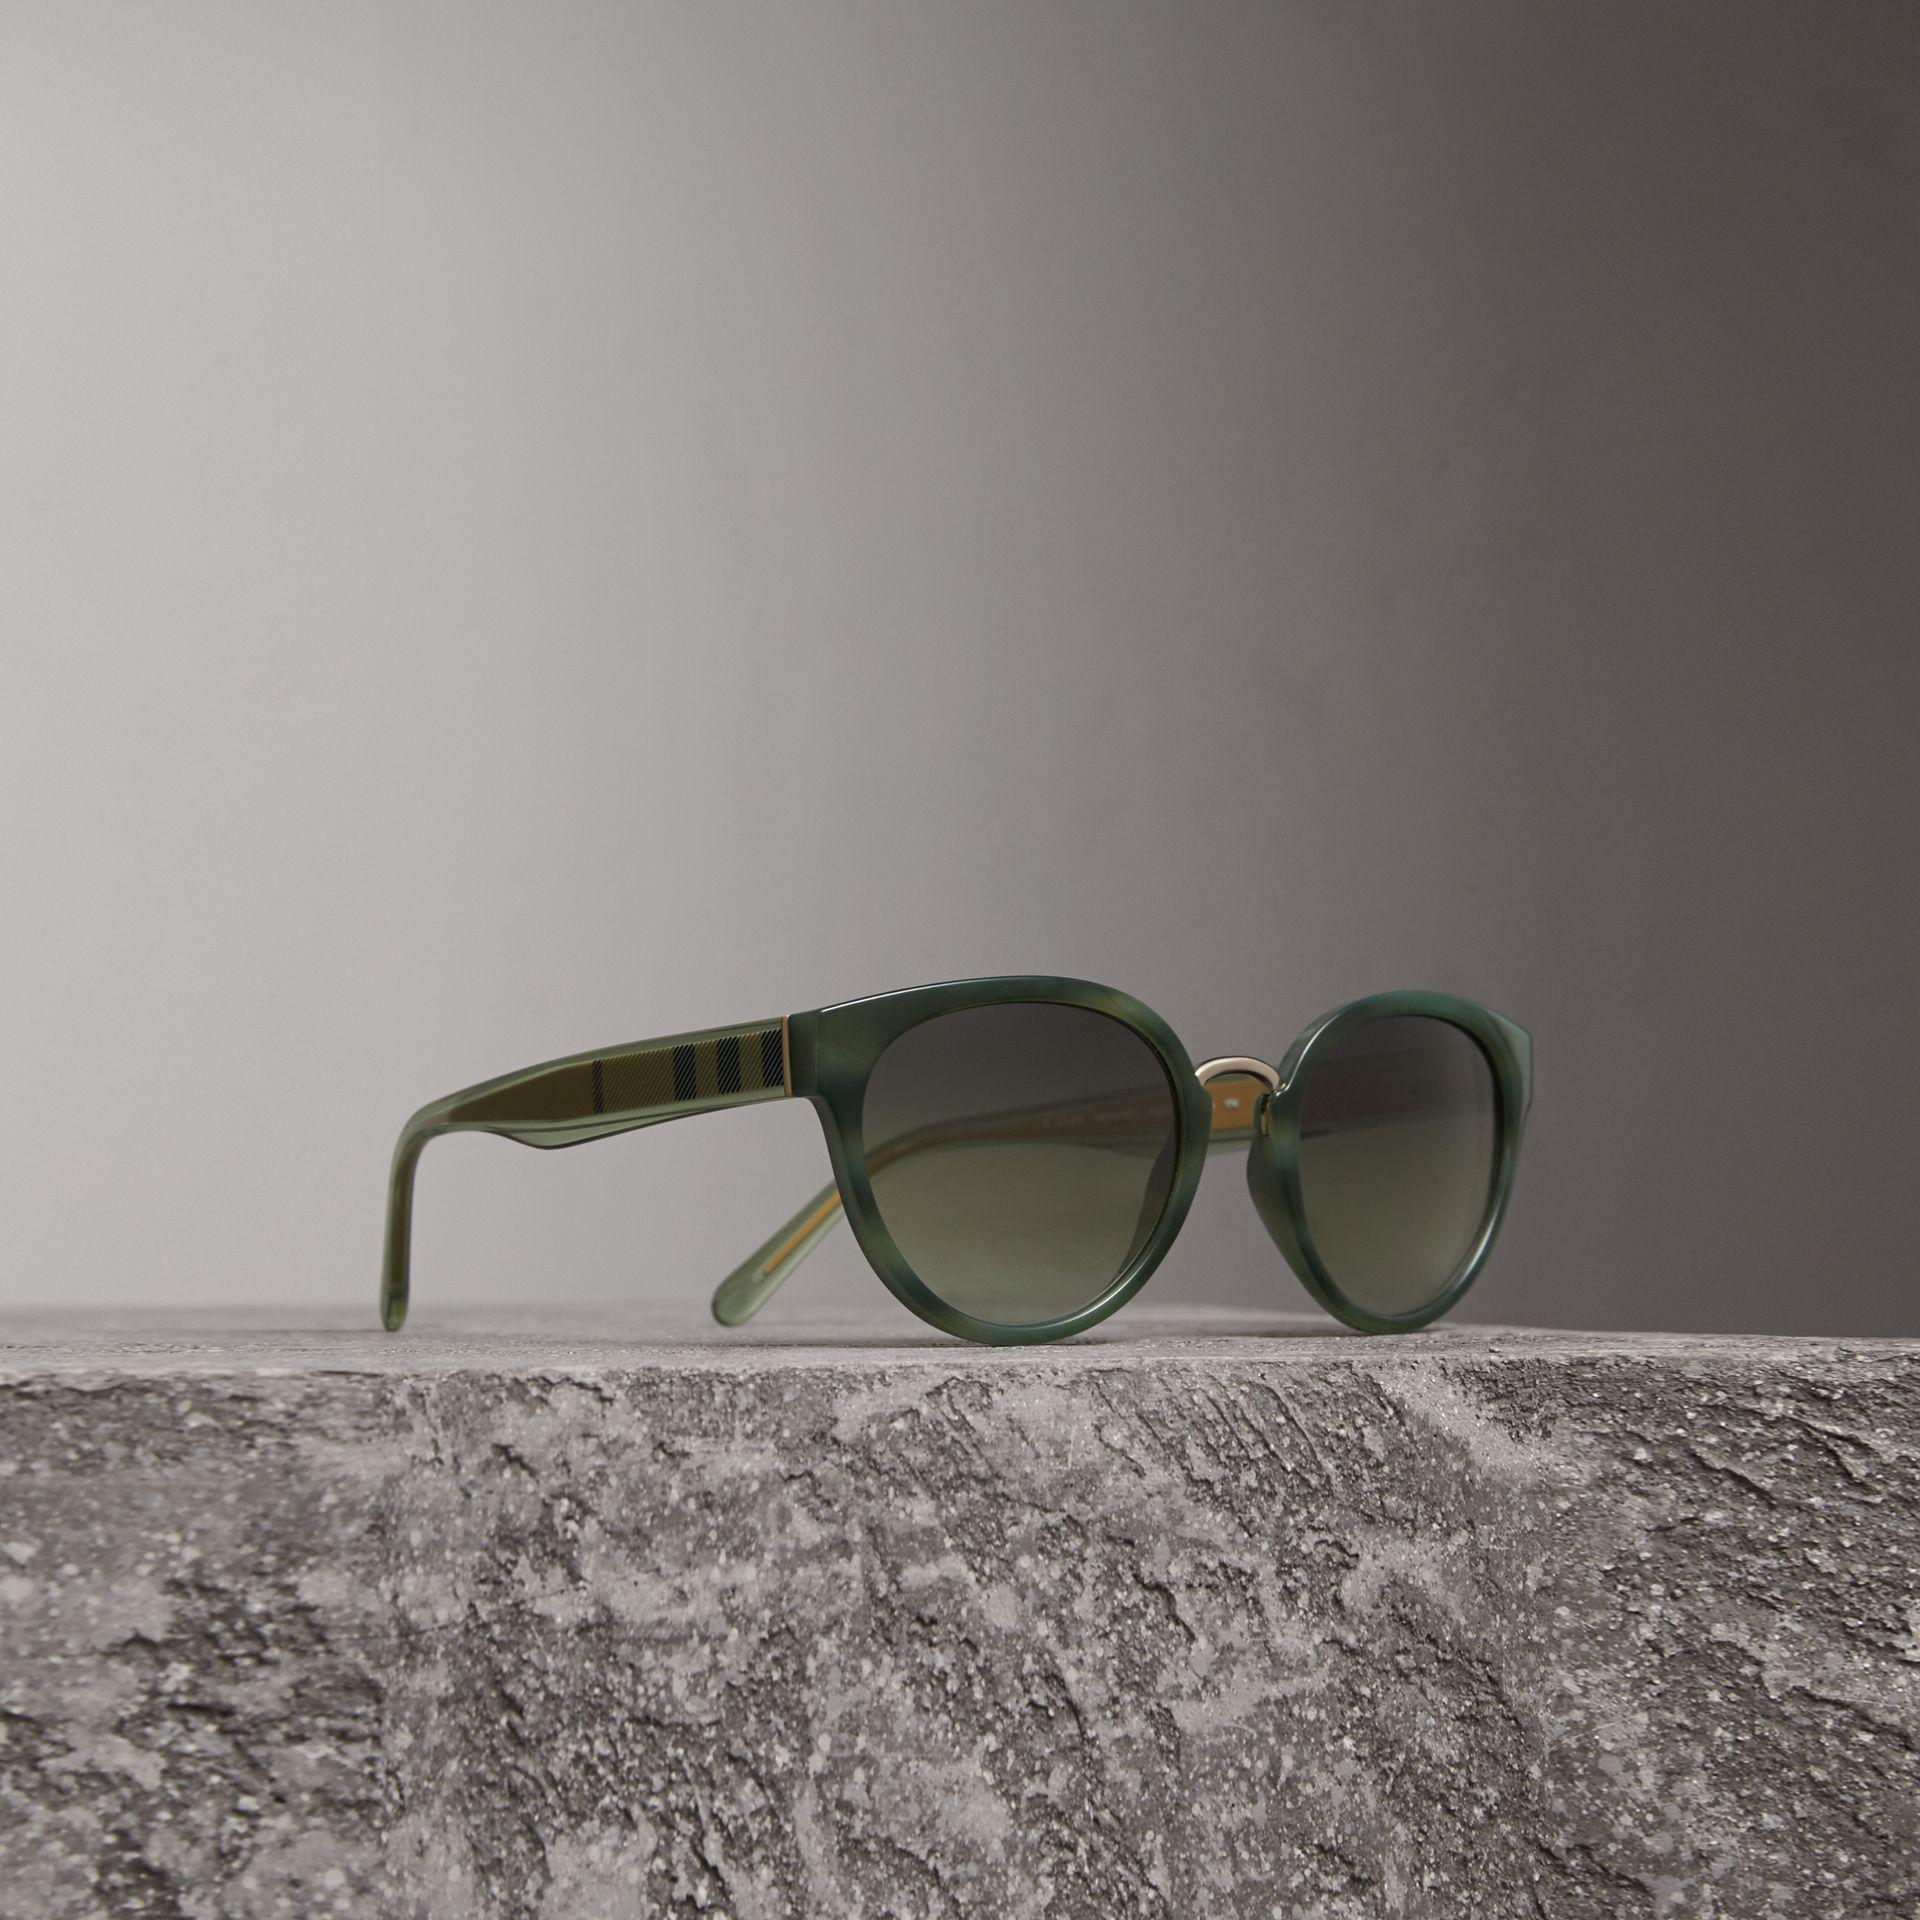 facc304257a6 Burberry Check Detail Cat-eye Frame Sunglasses In Dark Olive | in ...